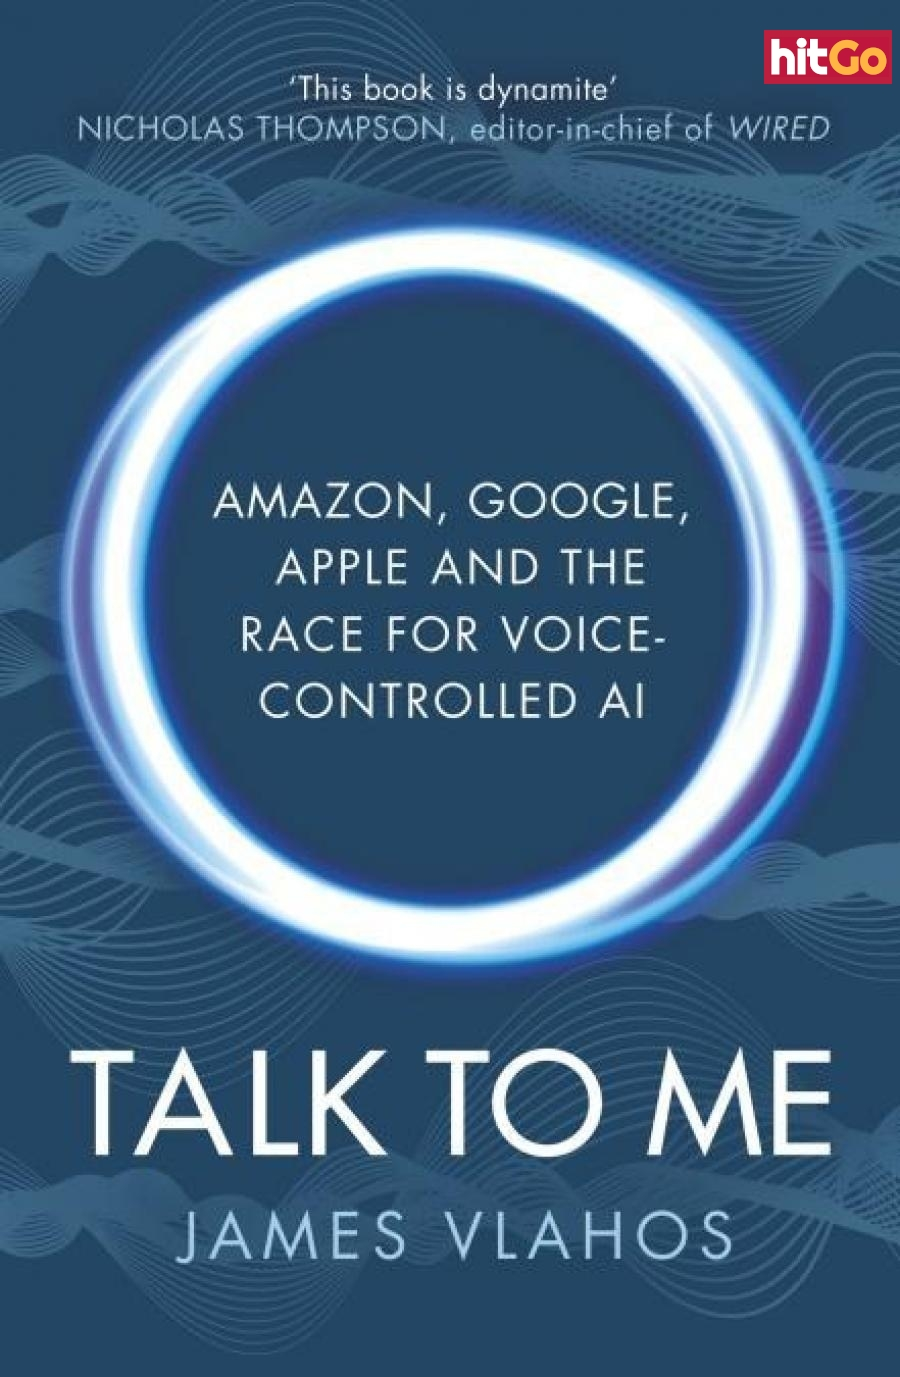 Talk to Me: Amazon, Google, Apple and the Race for Voice-Controlled Al